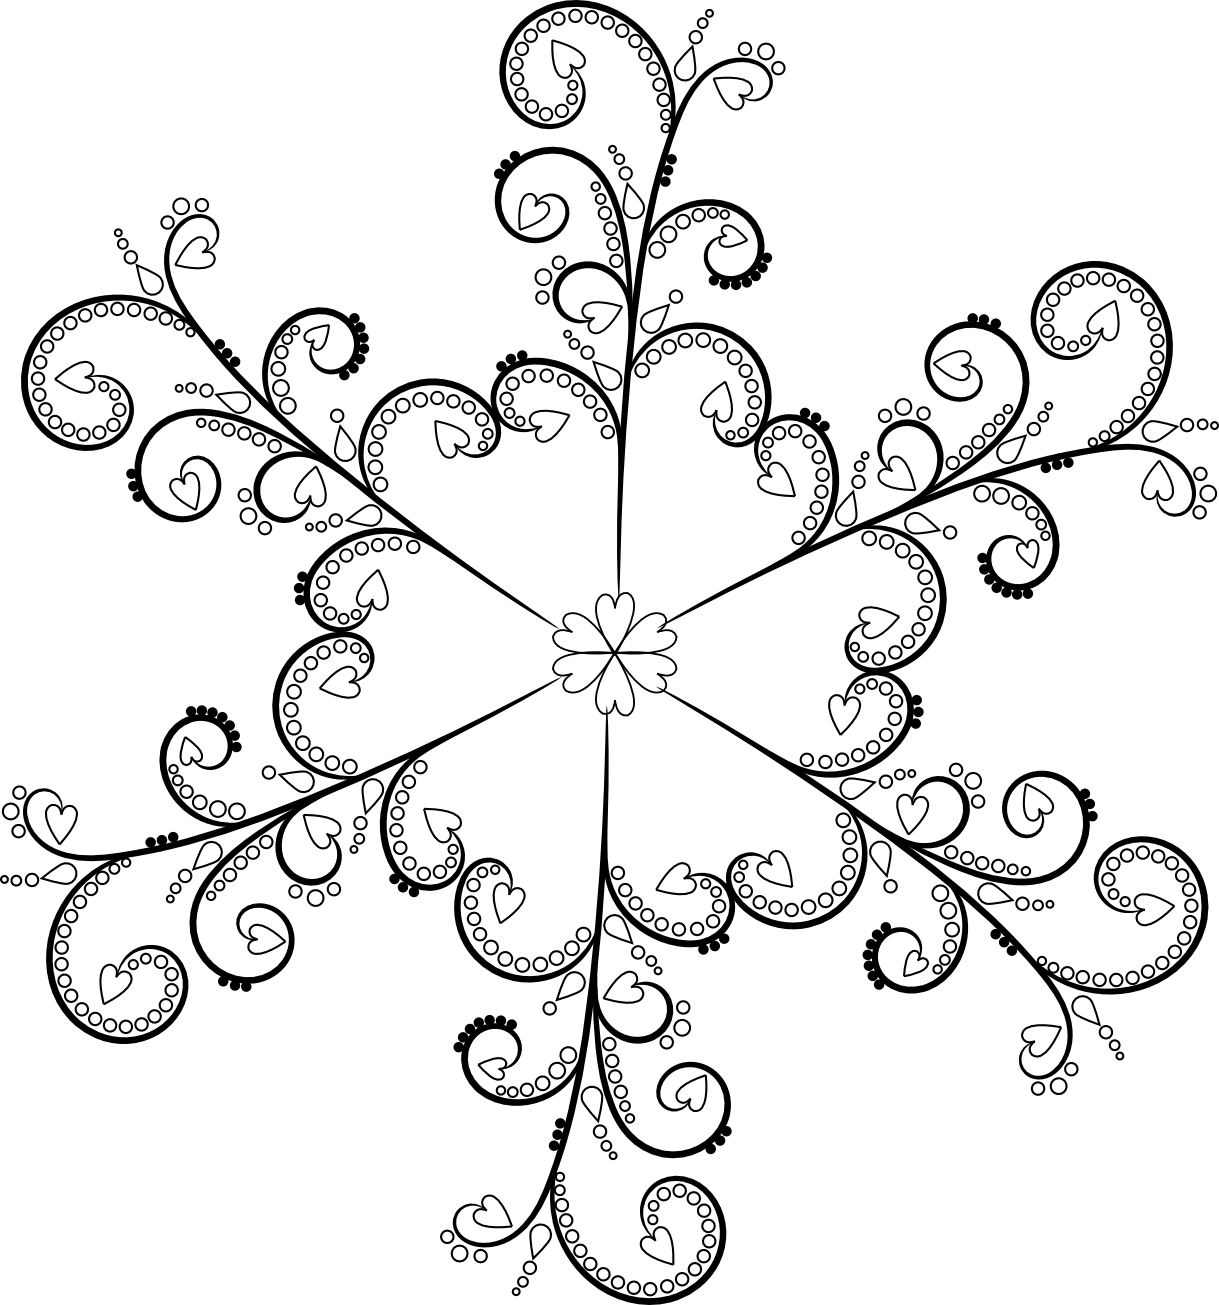 Free snowflake patterns clipart vector royalty free stock Free Snowflake Patterns Clipart | jokingart.com Snowflake Clipart vector royalty free stock